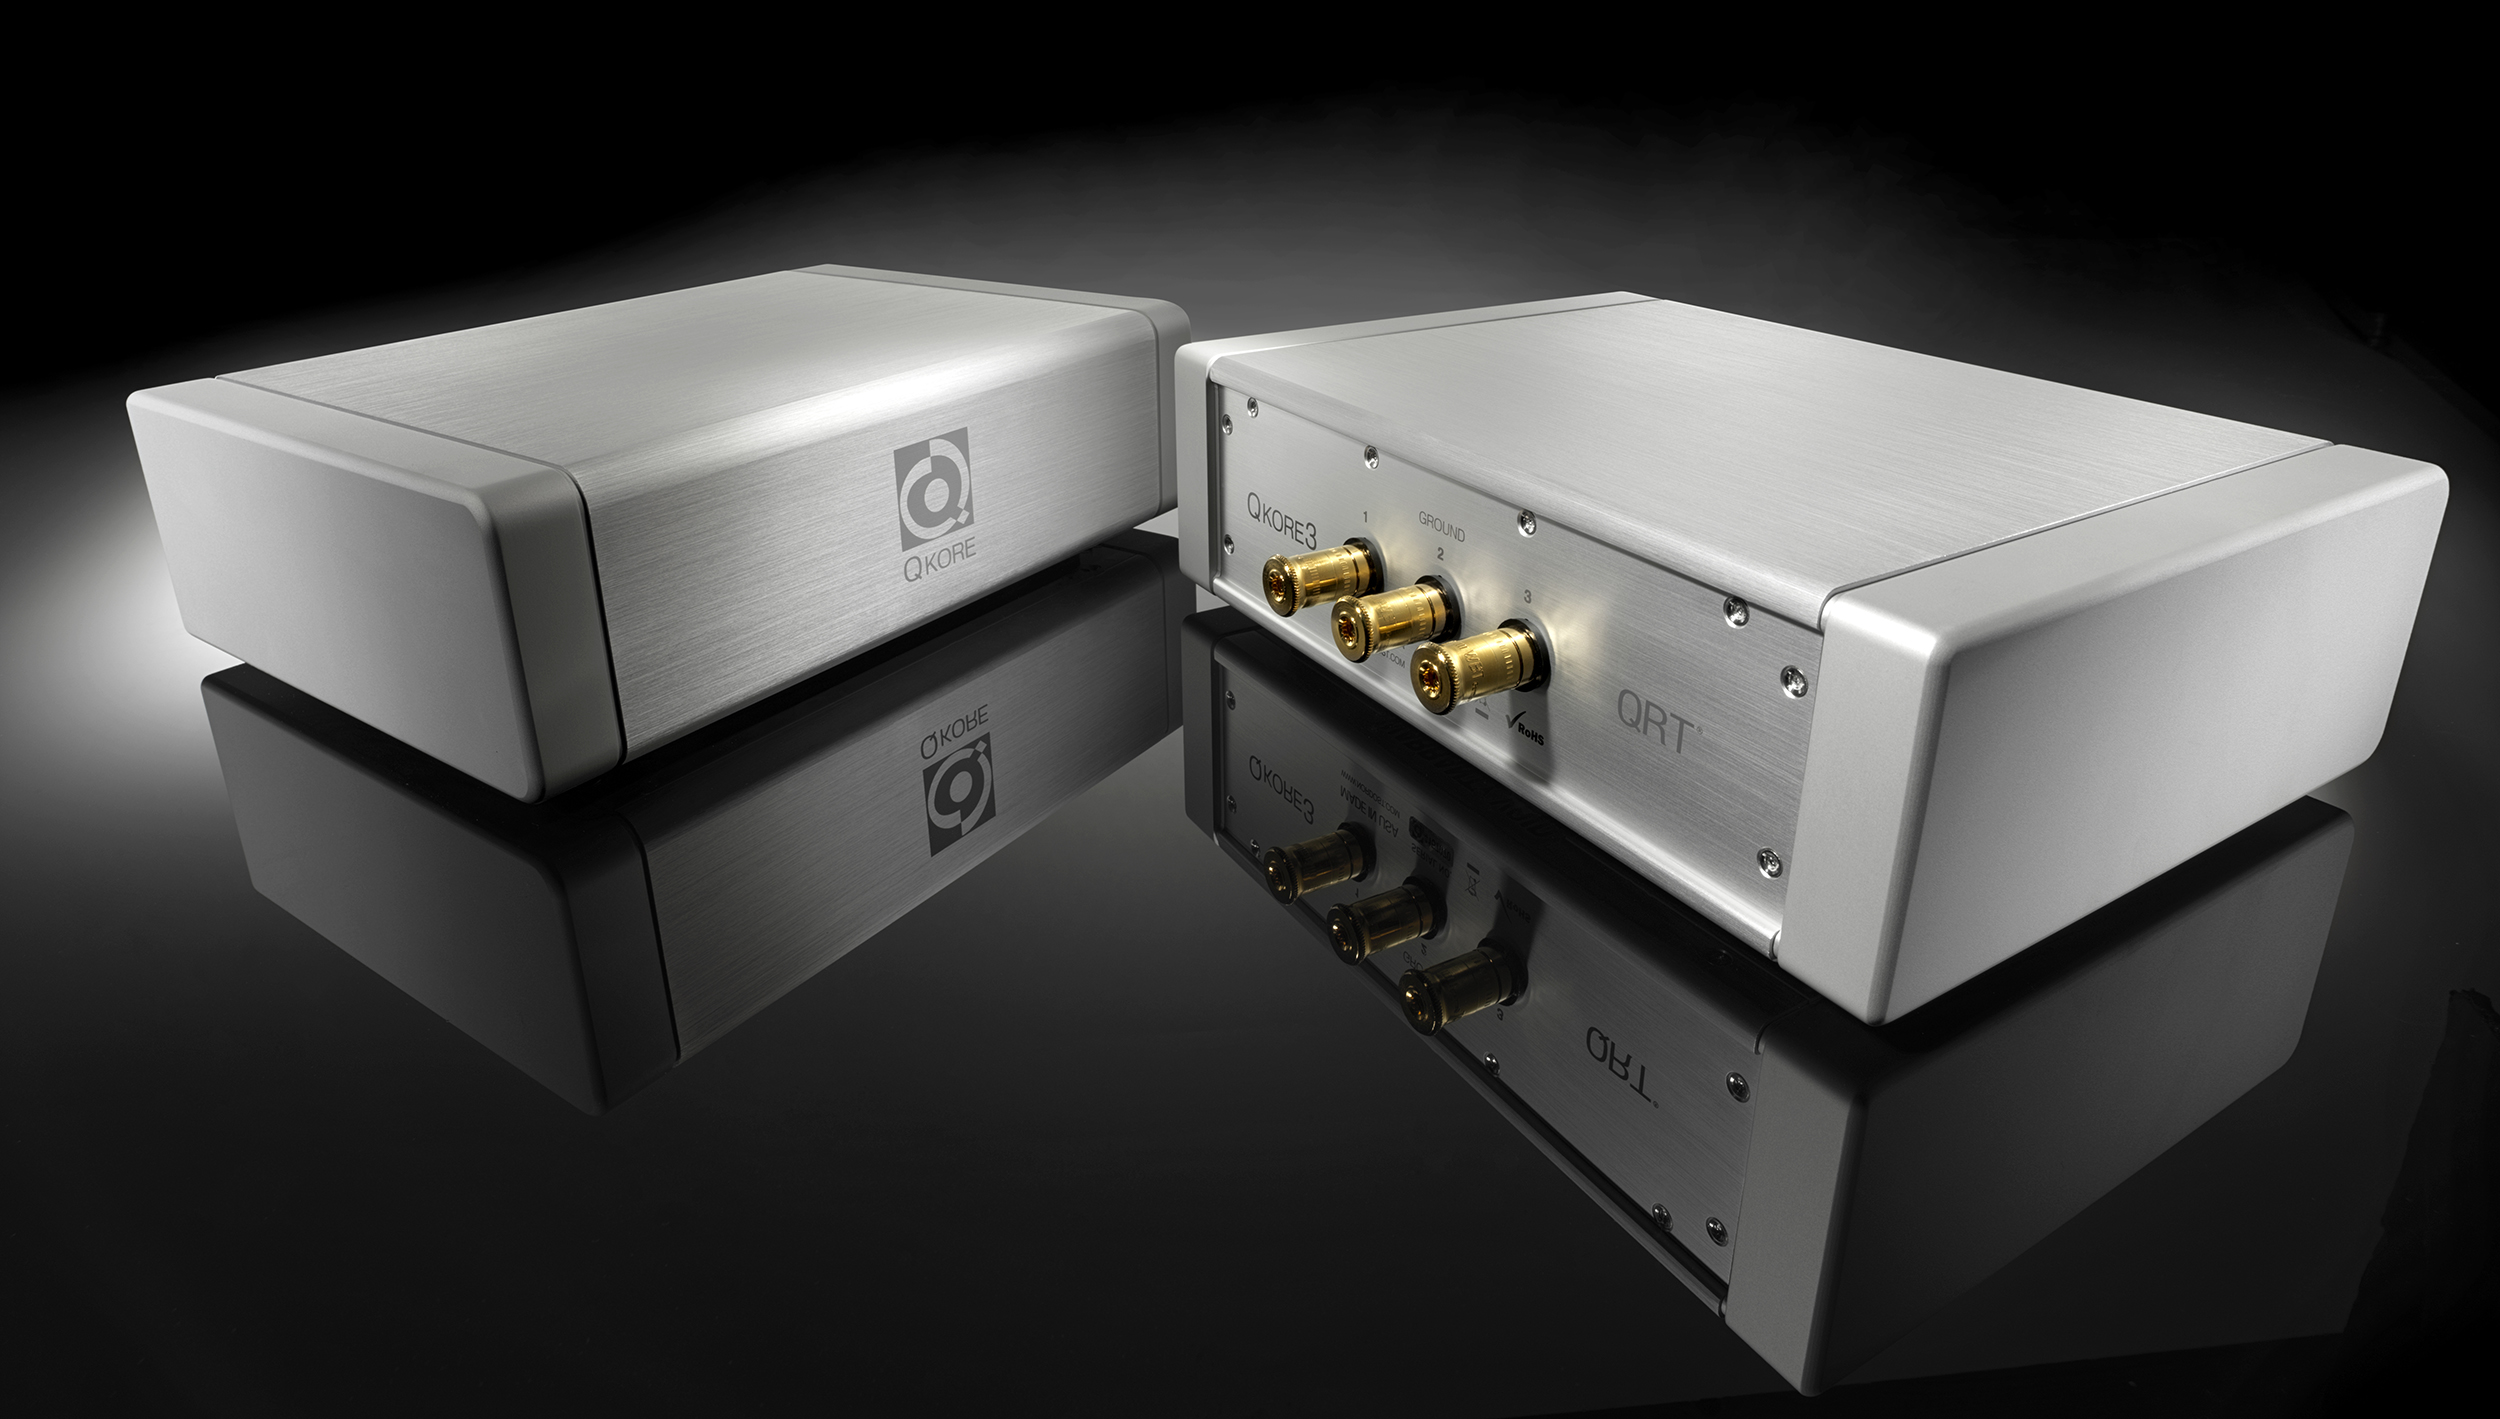 Nordost introduces the QKORE: Ground Unit